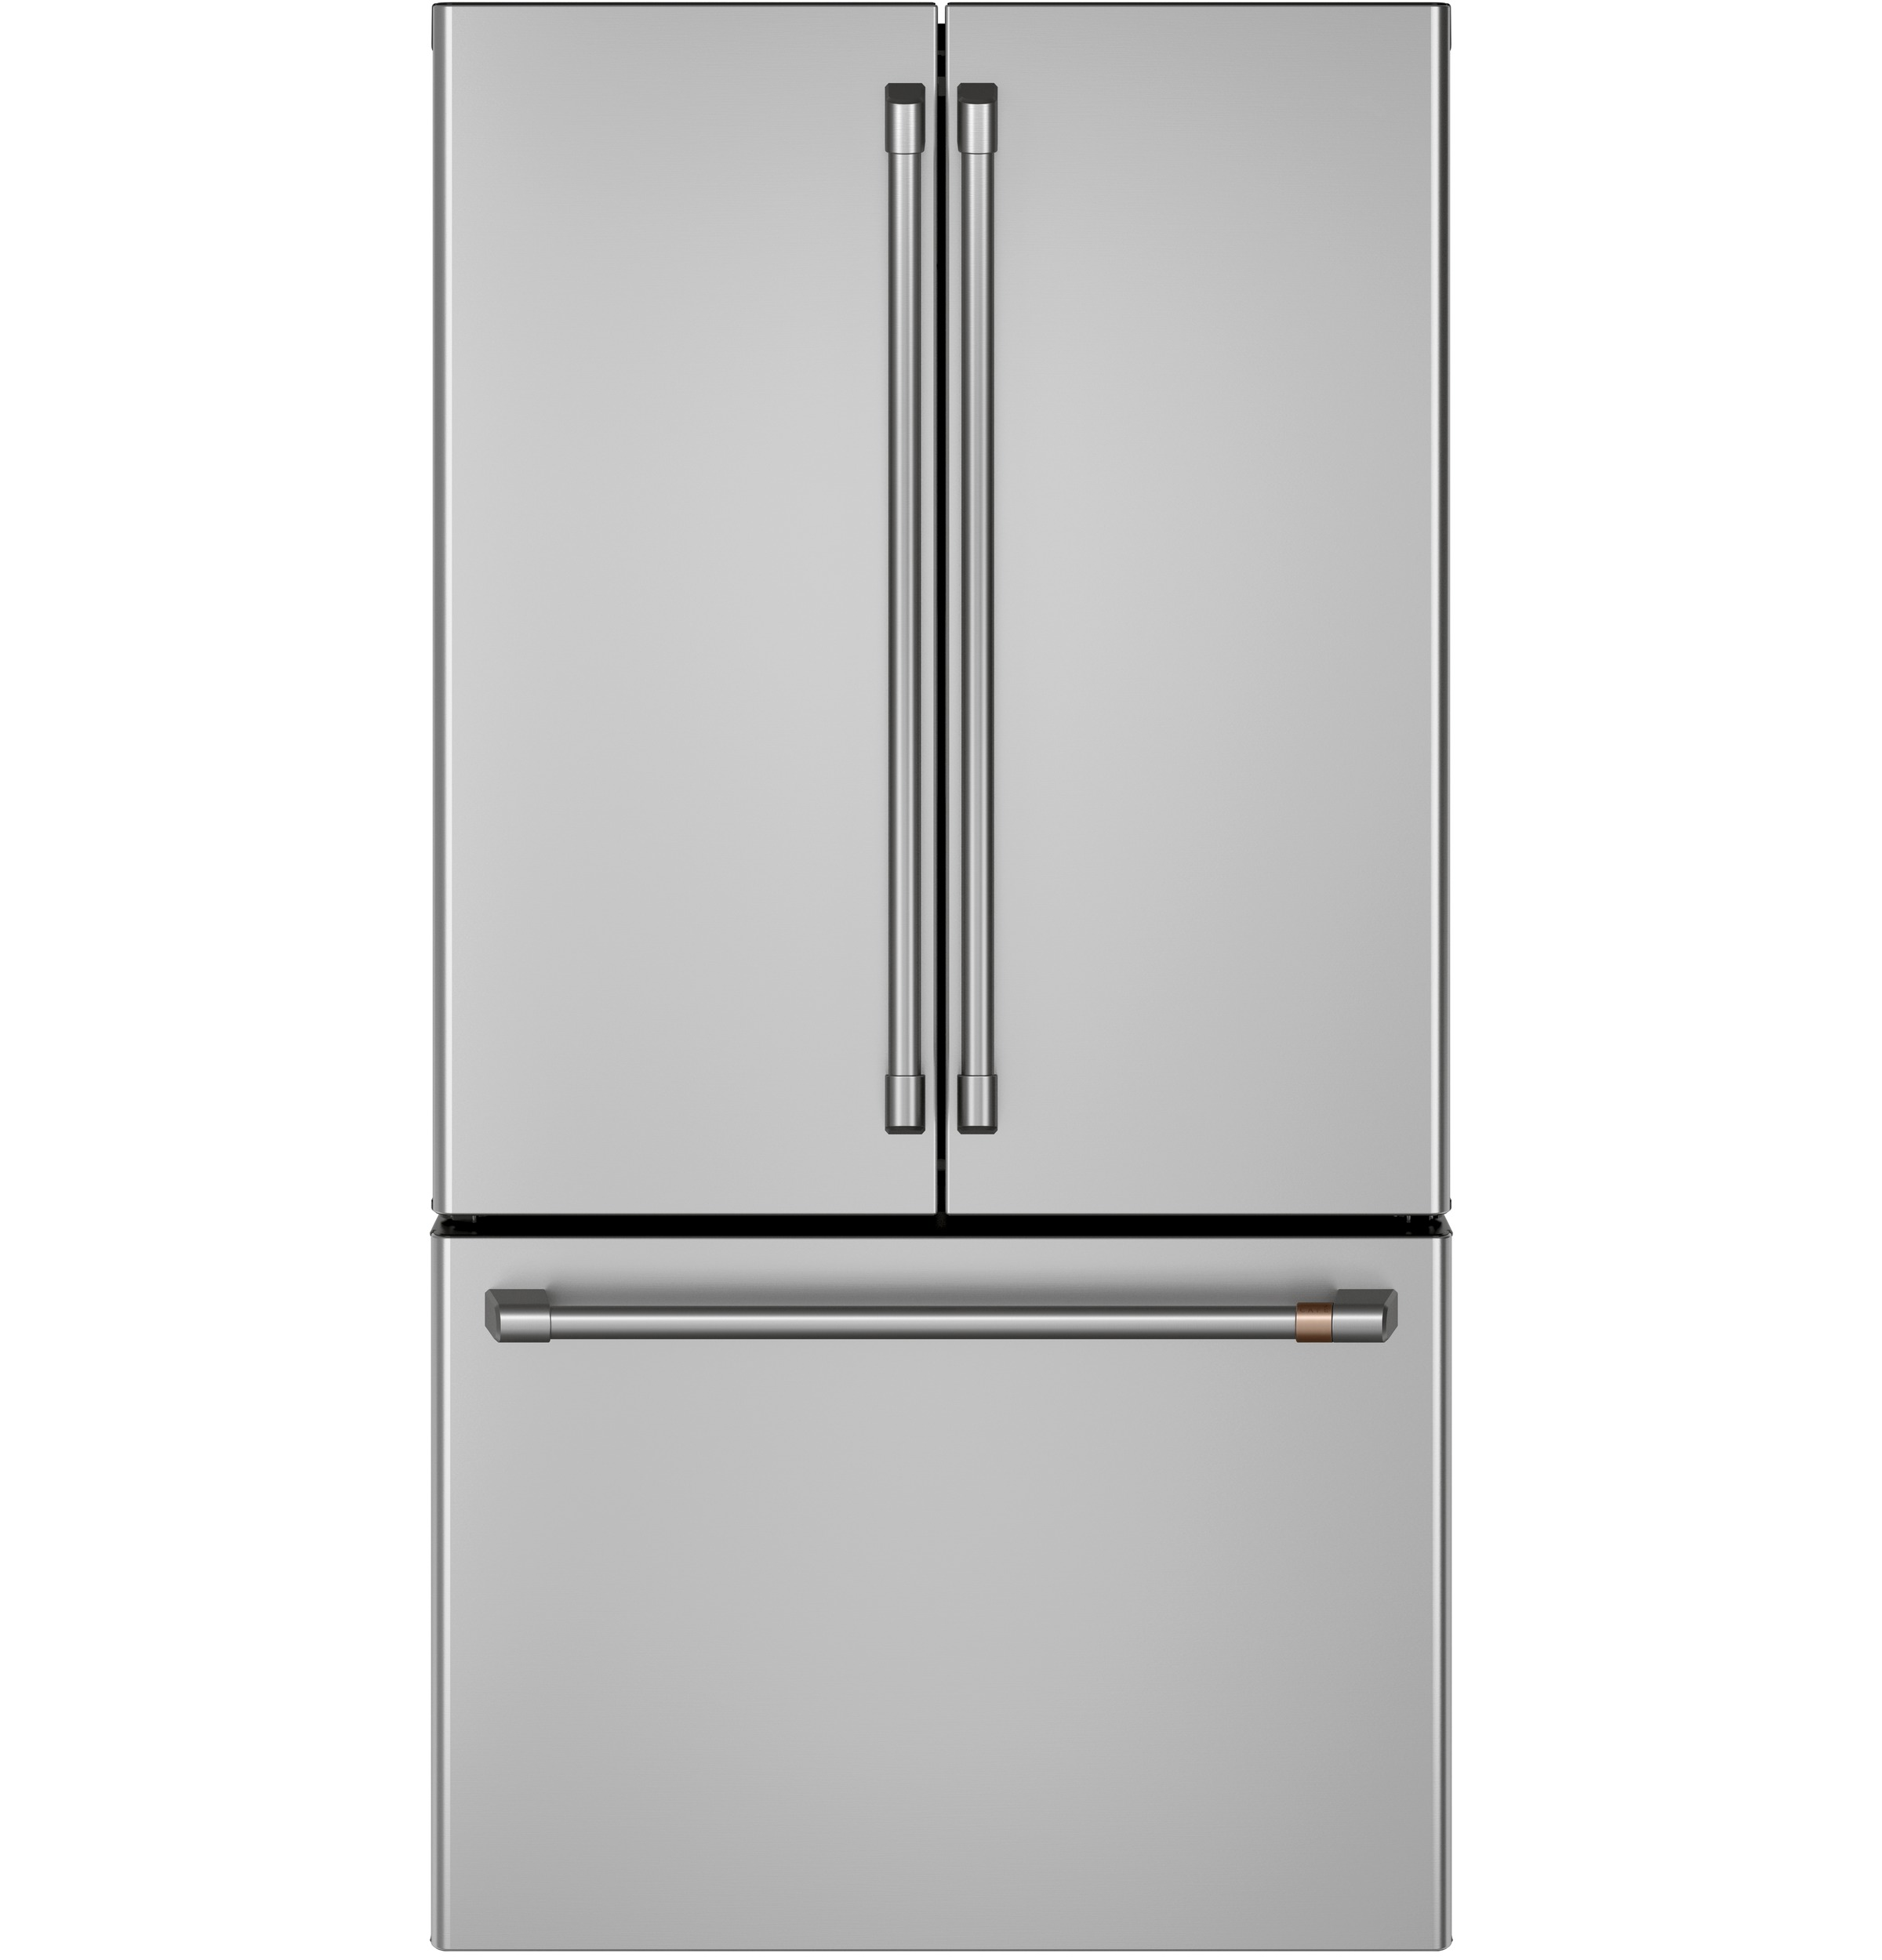 Cafe Café™ ENERGY STAR® 23.1 Cu. Ft. Counter-Depth French-Door Refrigerator